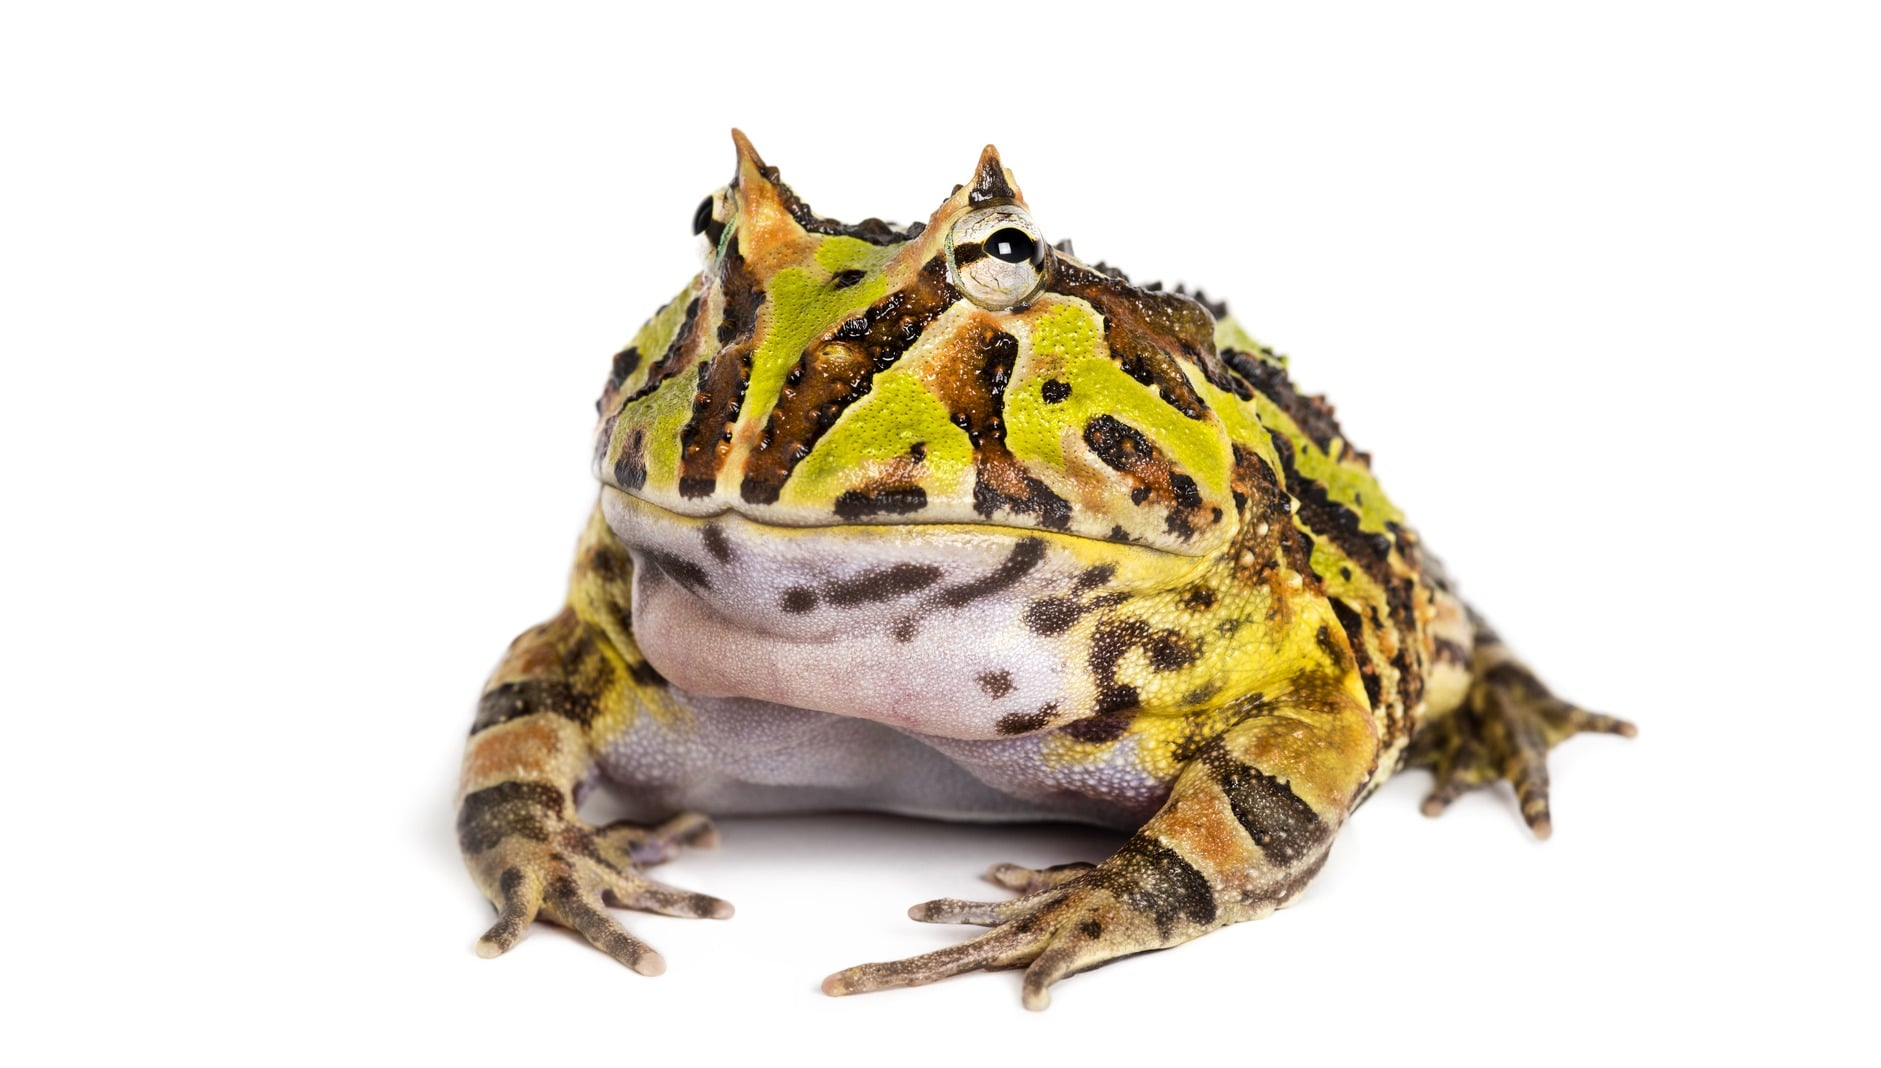 Rana pacman allevamento e cure argentine horned frog ceratophrys ornata isolated PU7XTVC 1 1 1